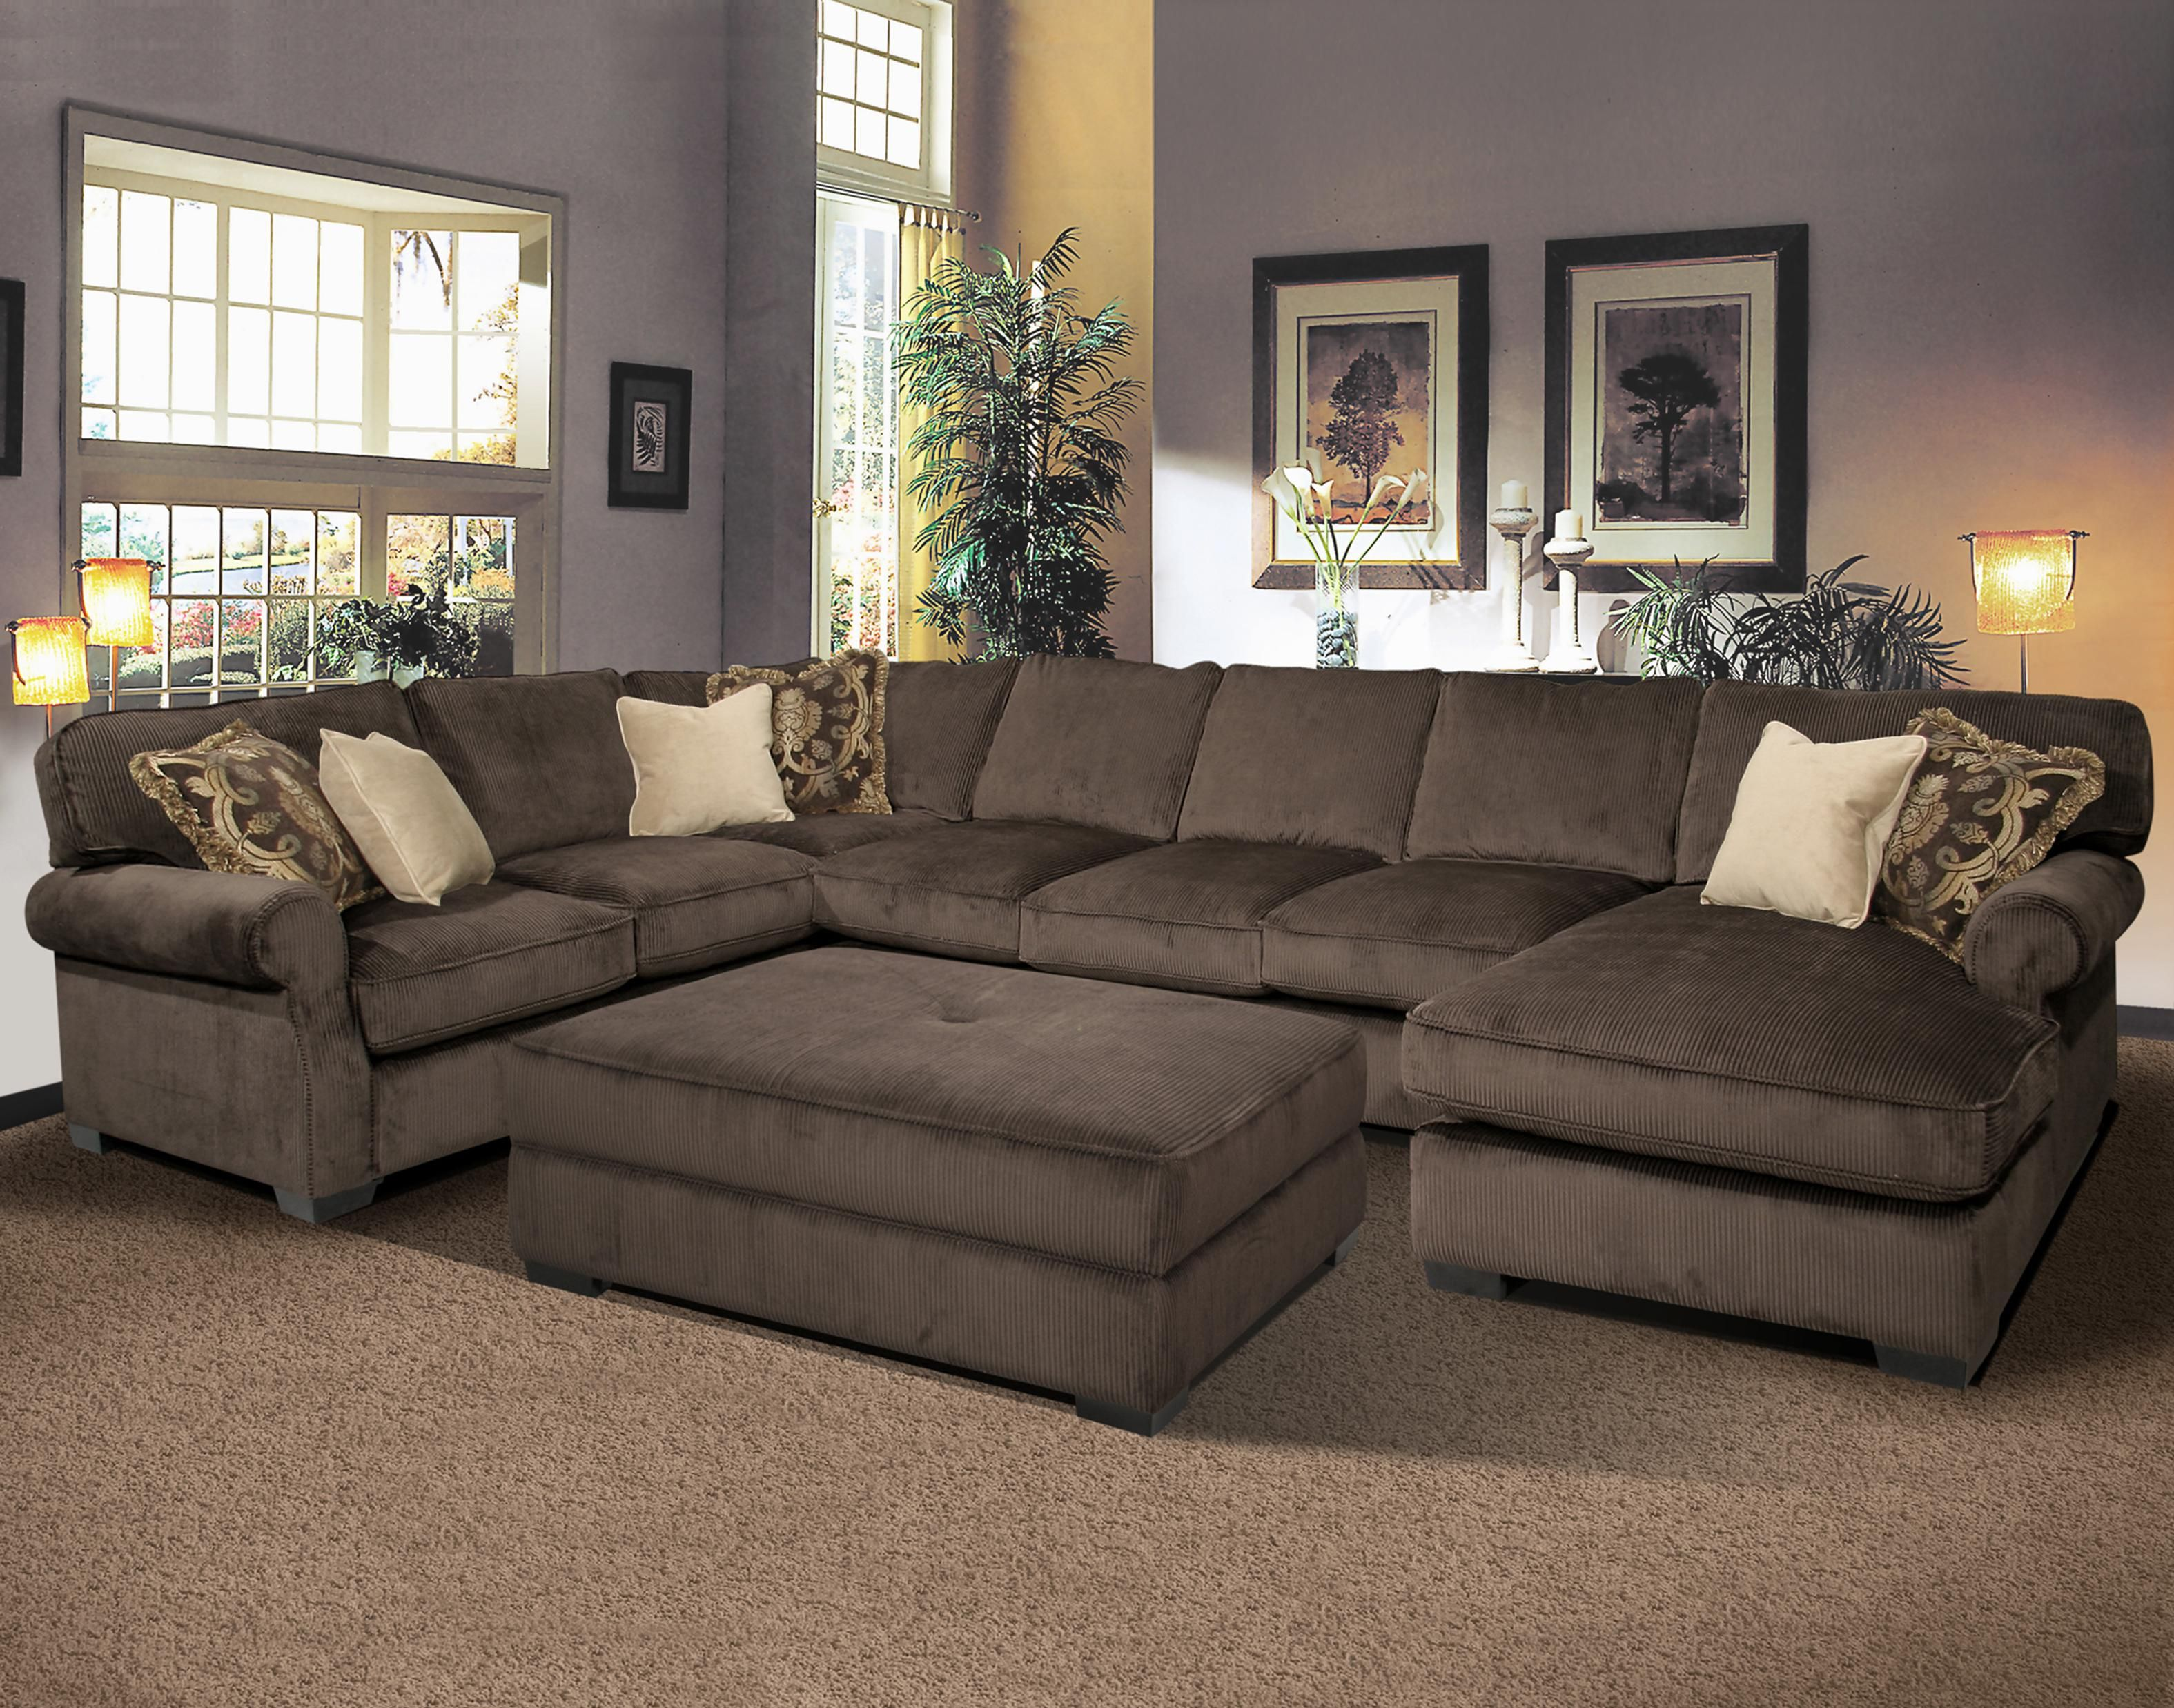 Best Big And Comfy Grand Island Large 7 Seat Sectional Sofa 640 x 480